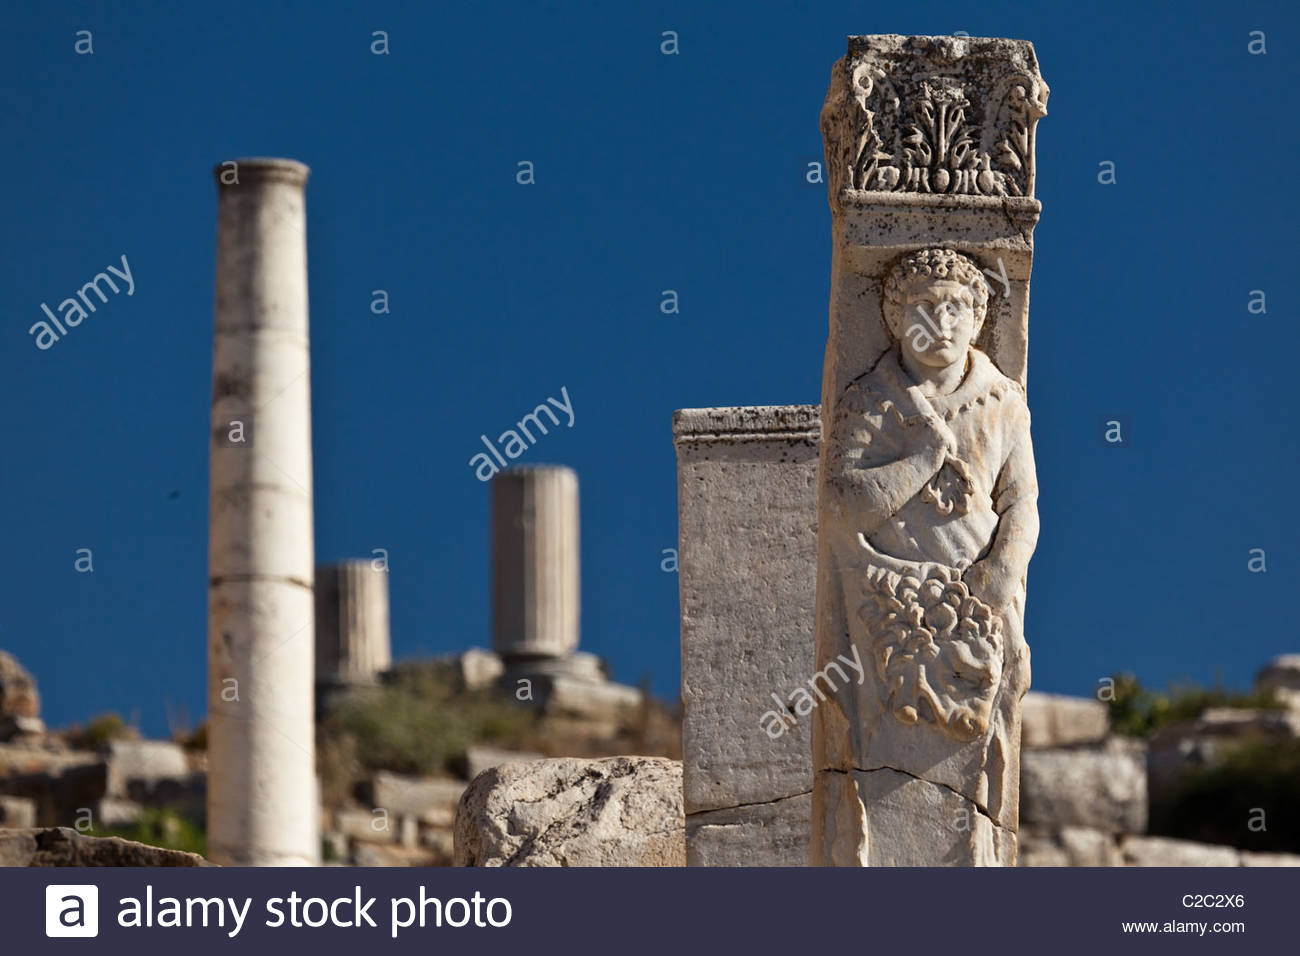 A well-preserved statue at the Gate of Hercules. - Stock Image